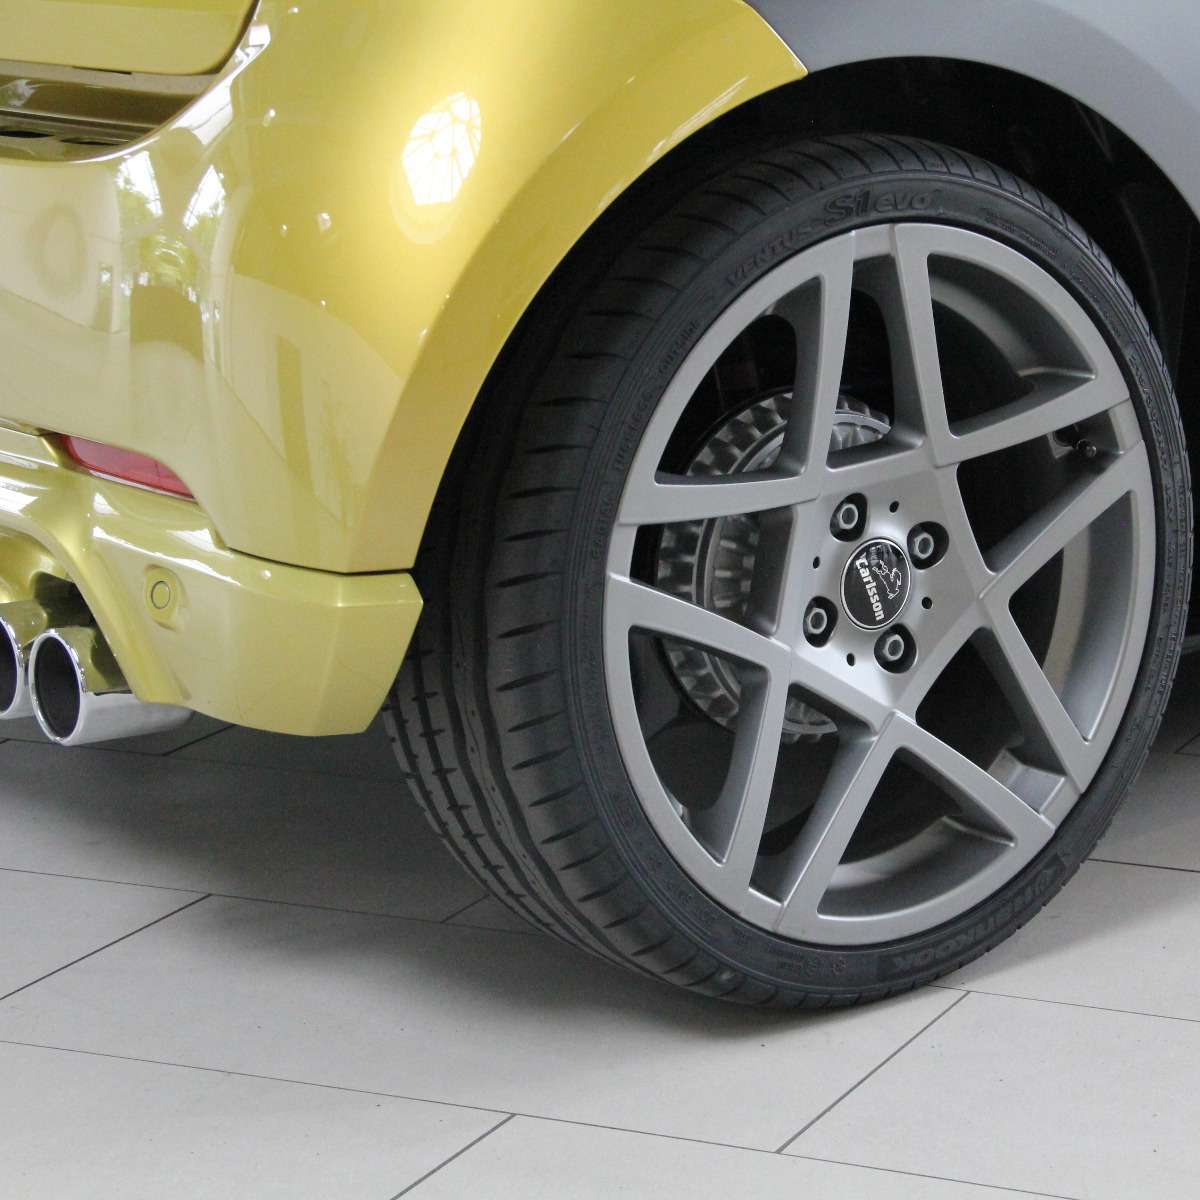 Fortwo 453 Mercedes Benz Fortwo 453 Tuning Wheels Parts Carlsson